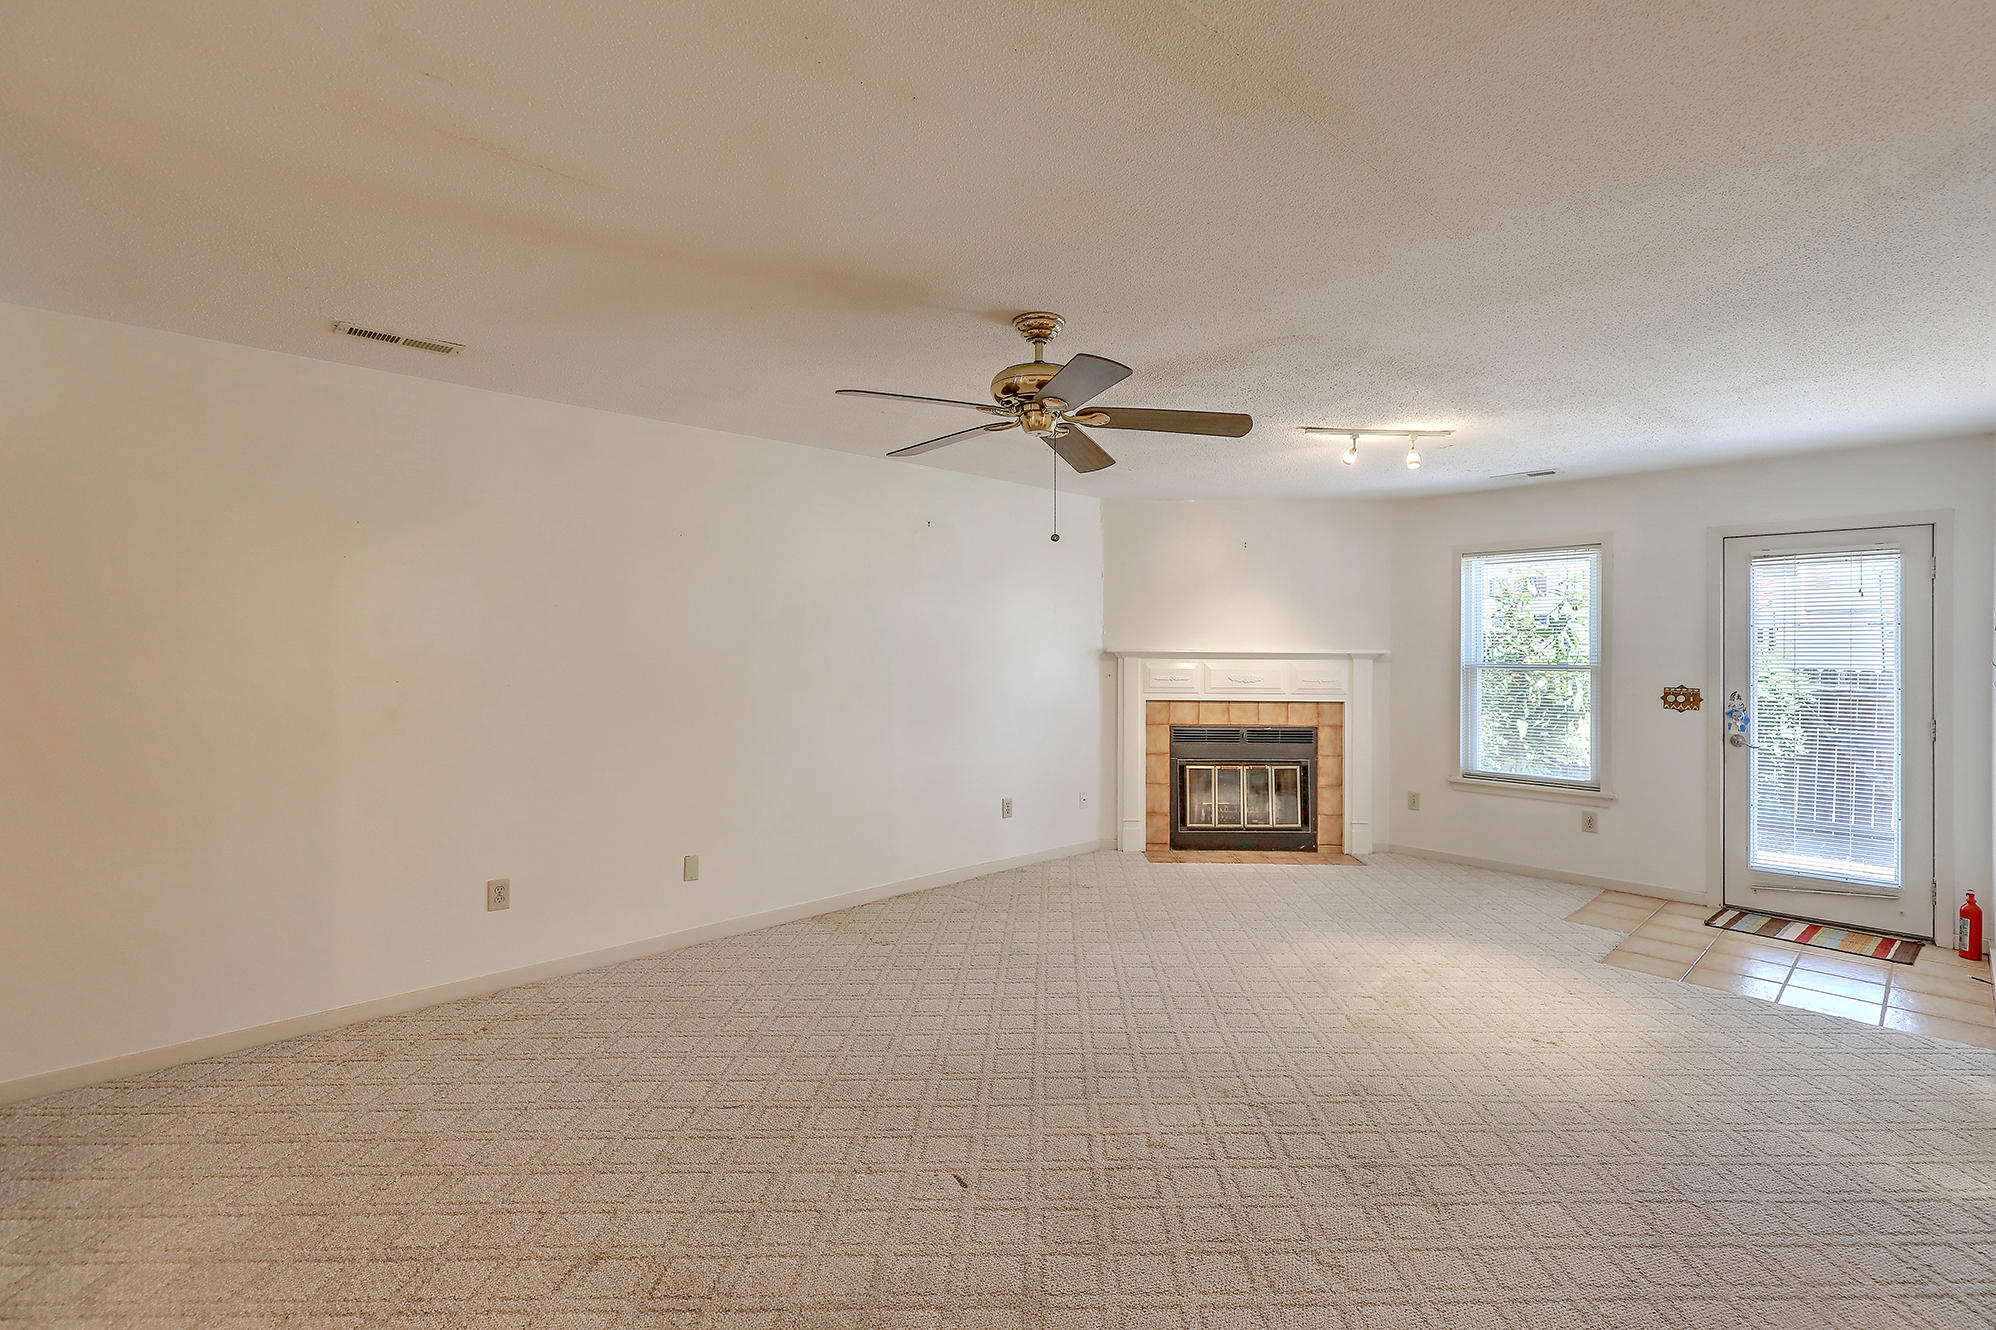 Old Towne Villas Homes For Sale - 2921 Cathedral, Charleston, SC - 28